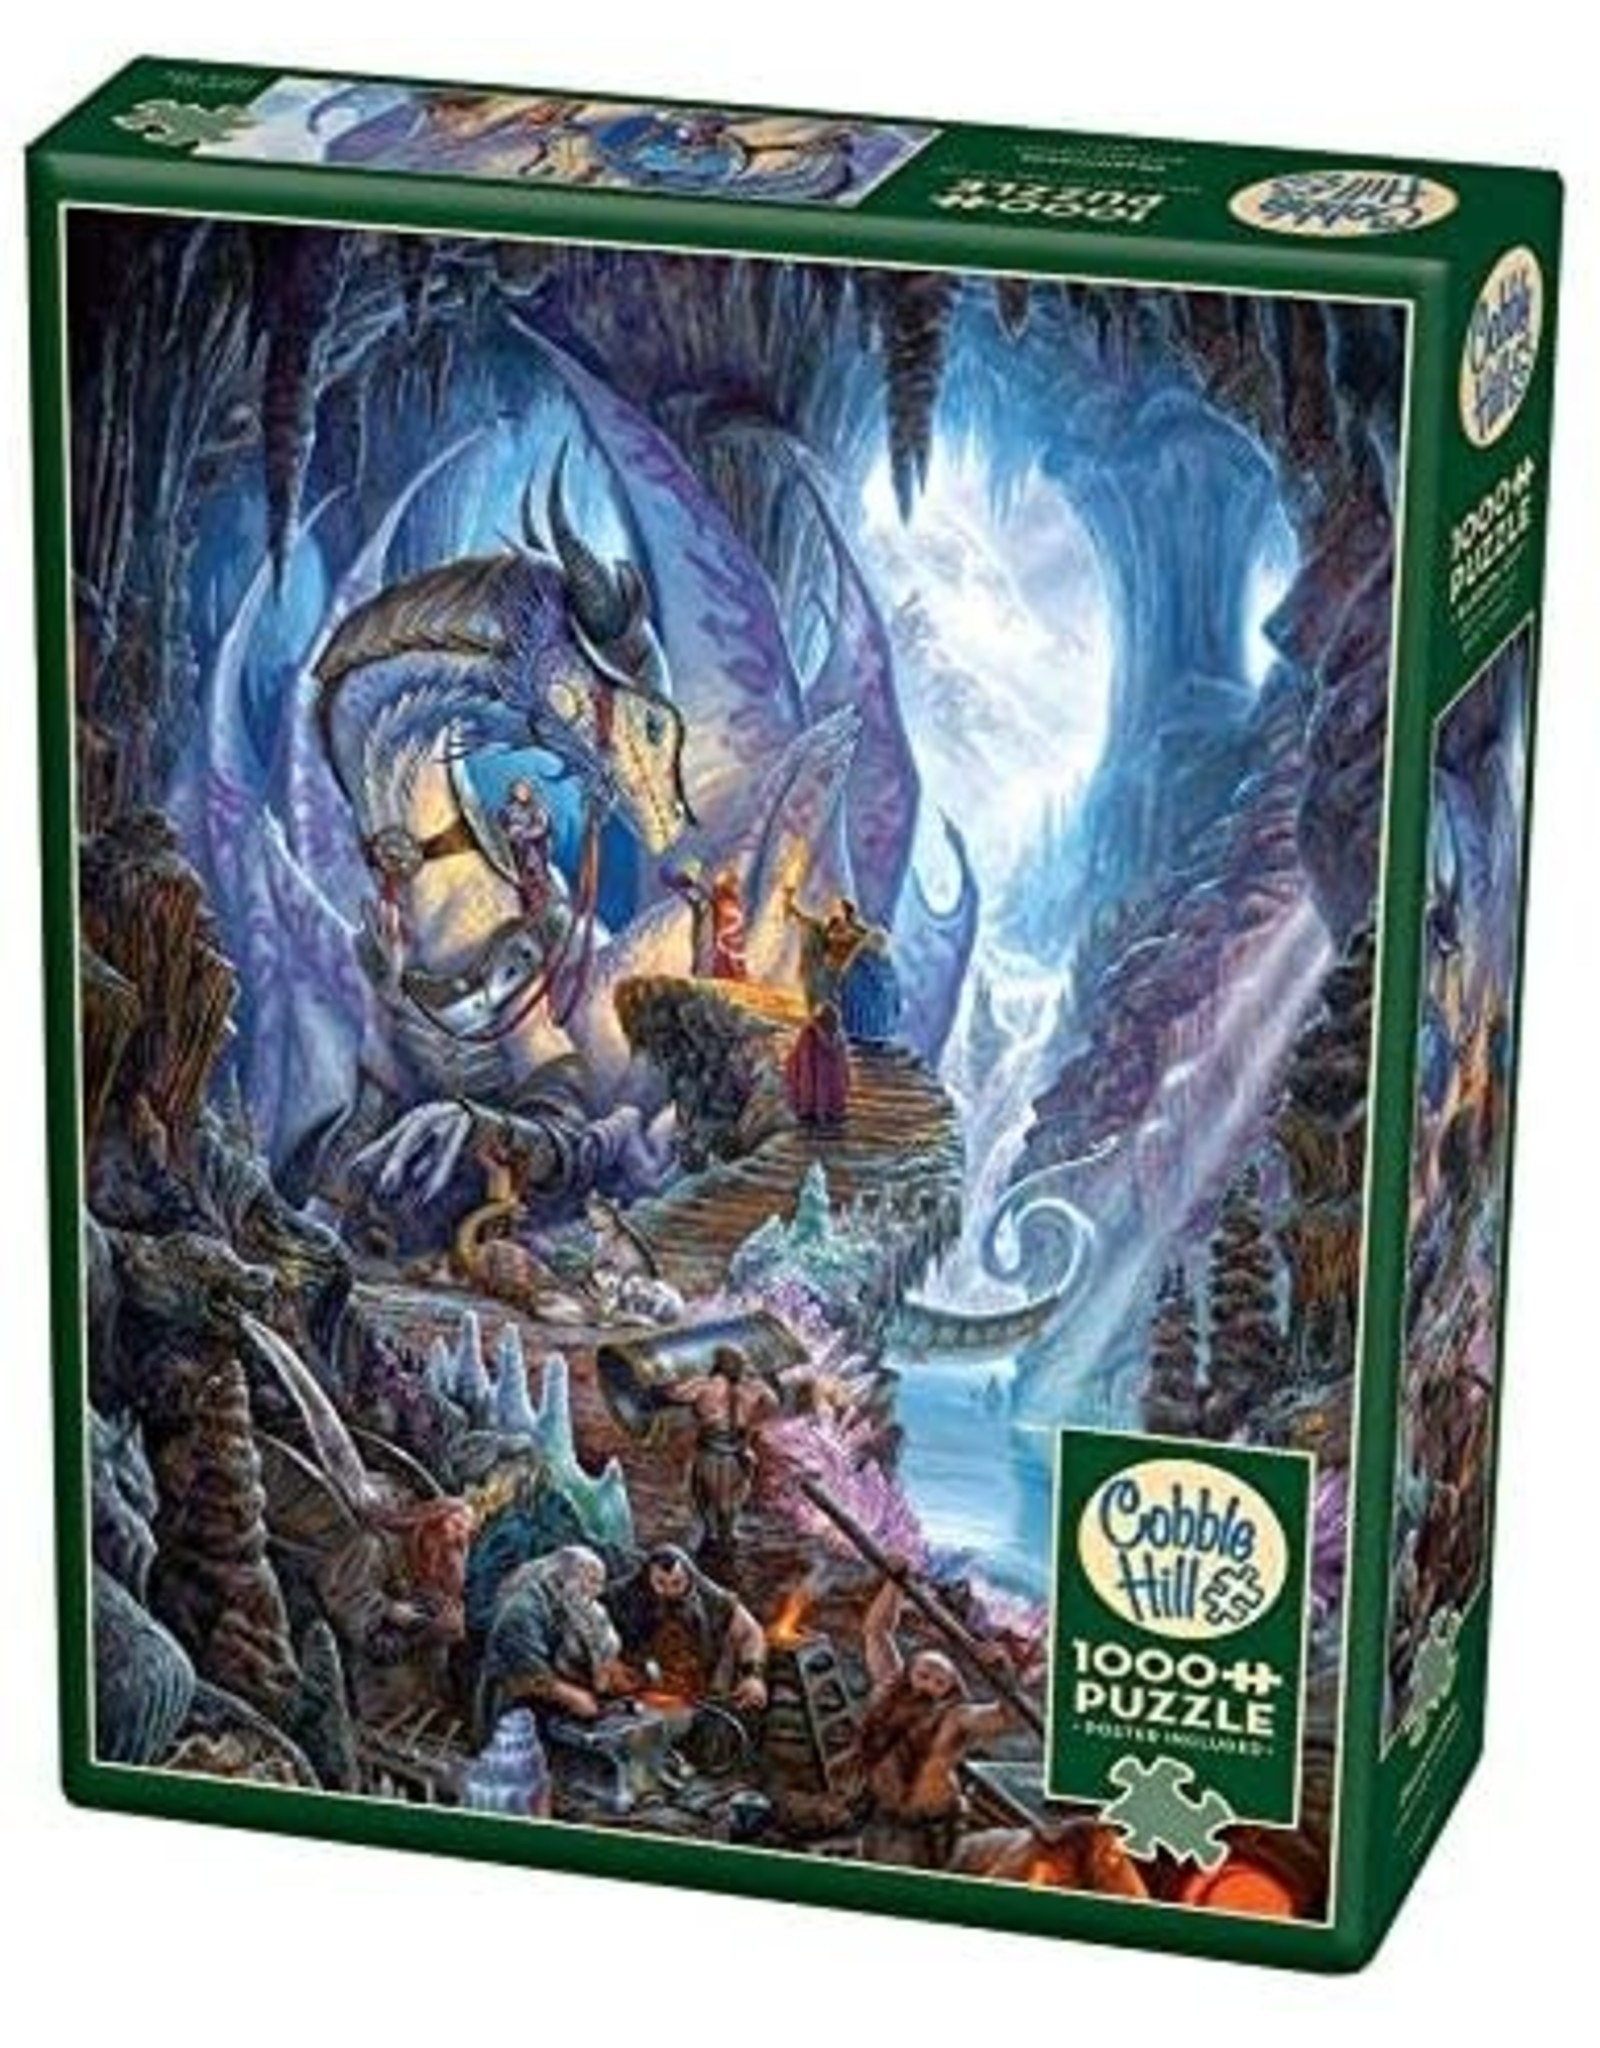 Cobble Hill Dragonforge 1000 pc